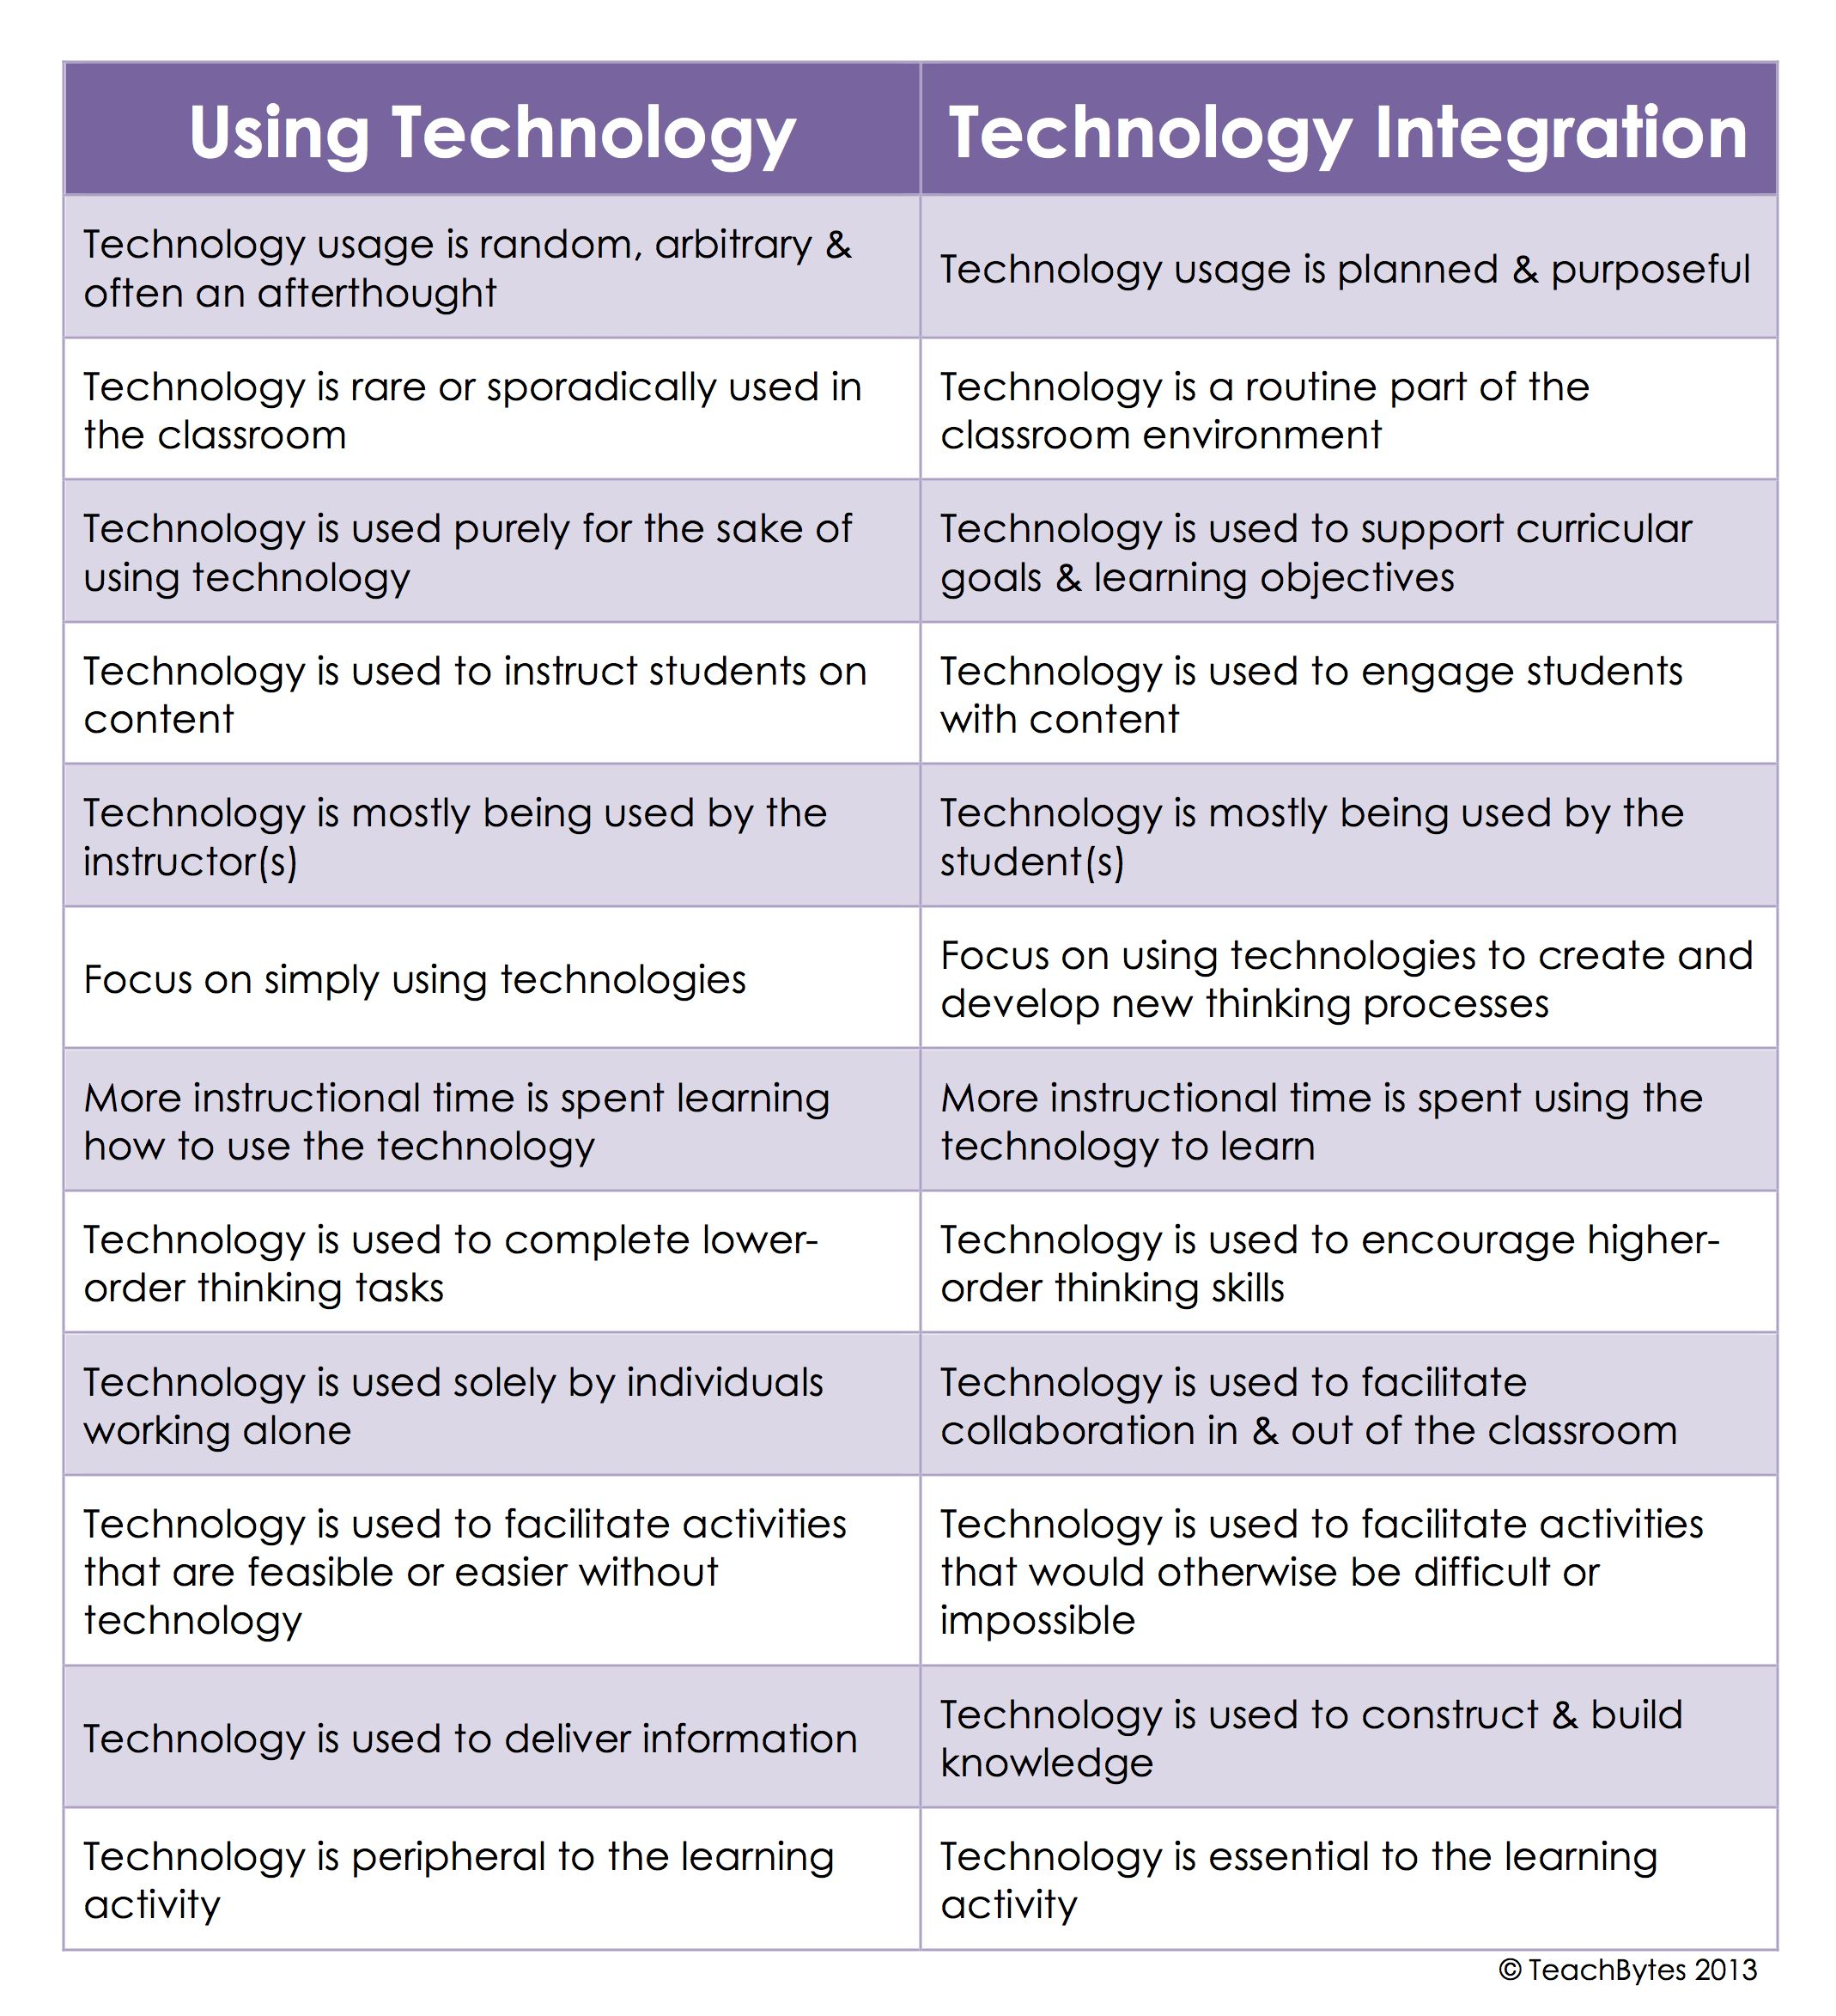 17 best images about learning technologies 17 best images about learning technologies technology teaching and ipad